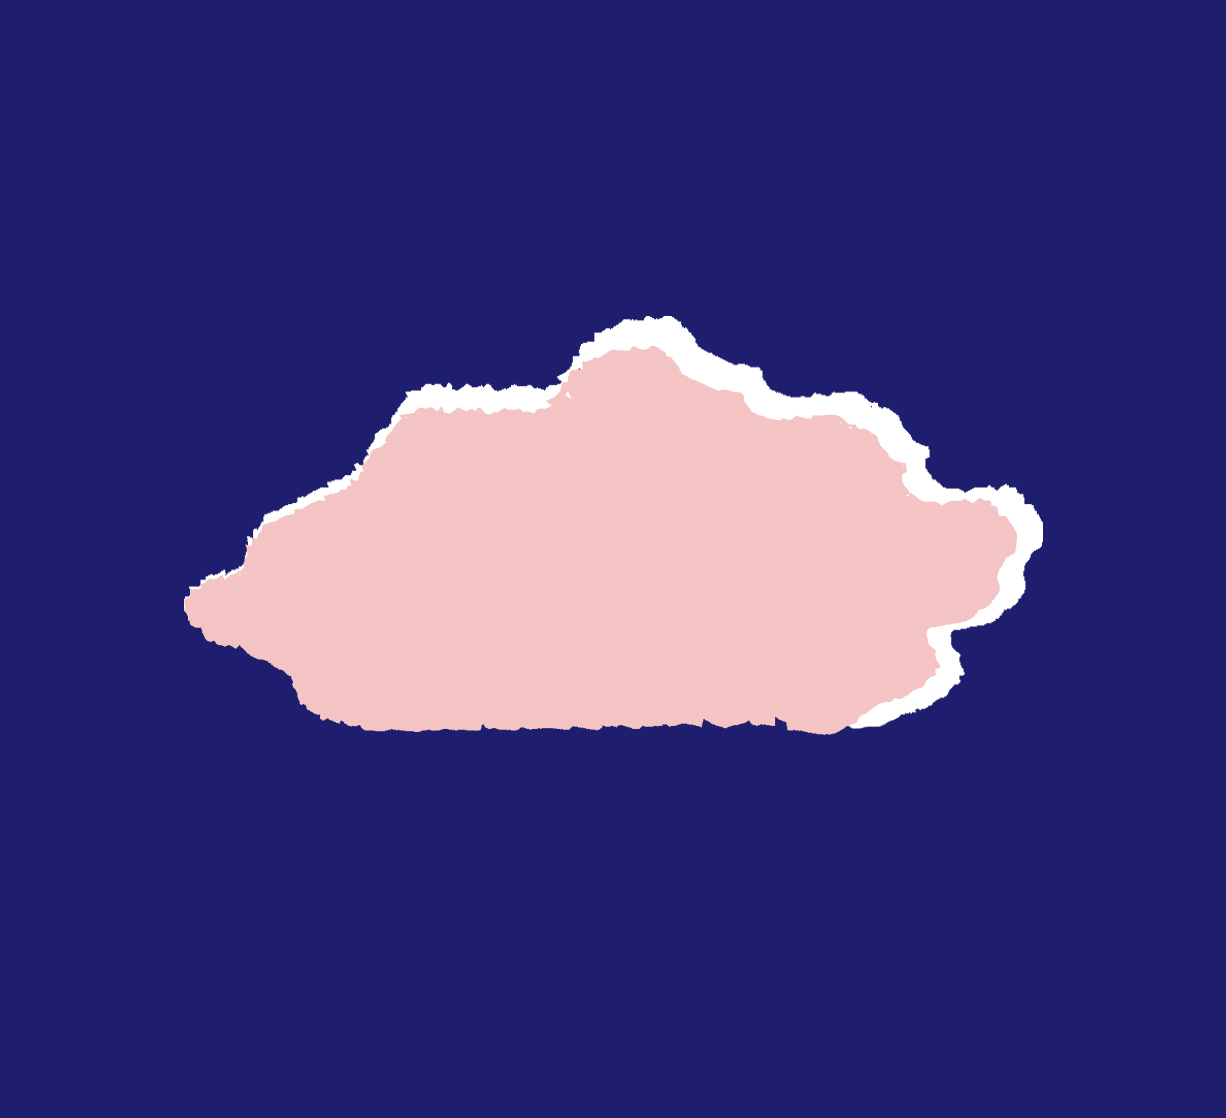 clouds-caitlin james-graphics-creative.jpg